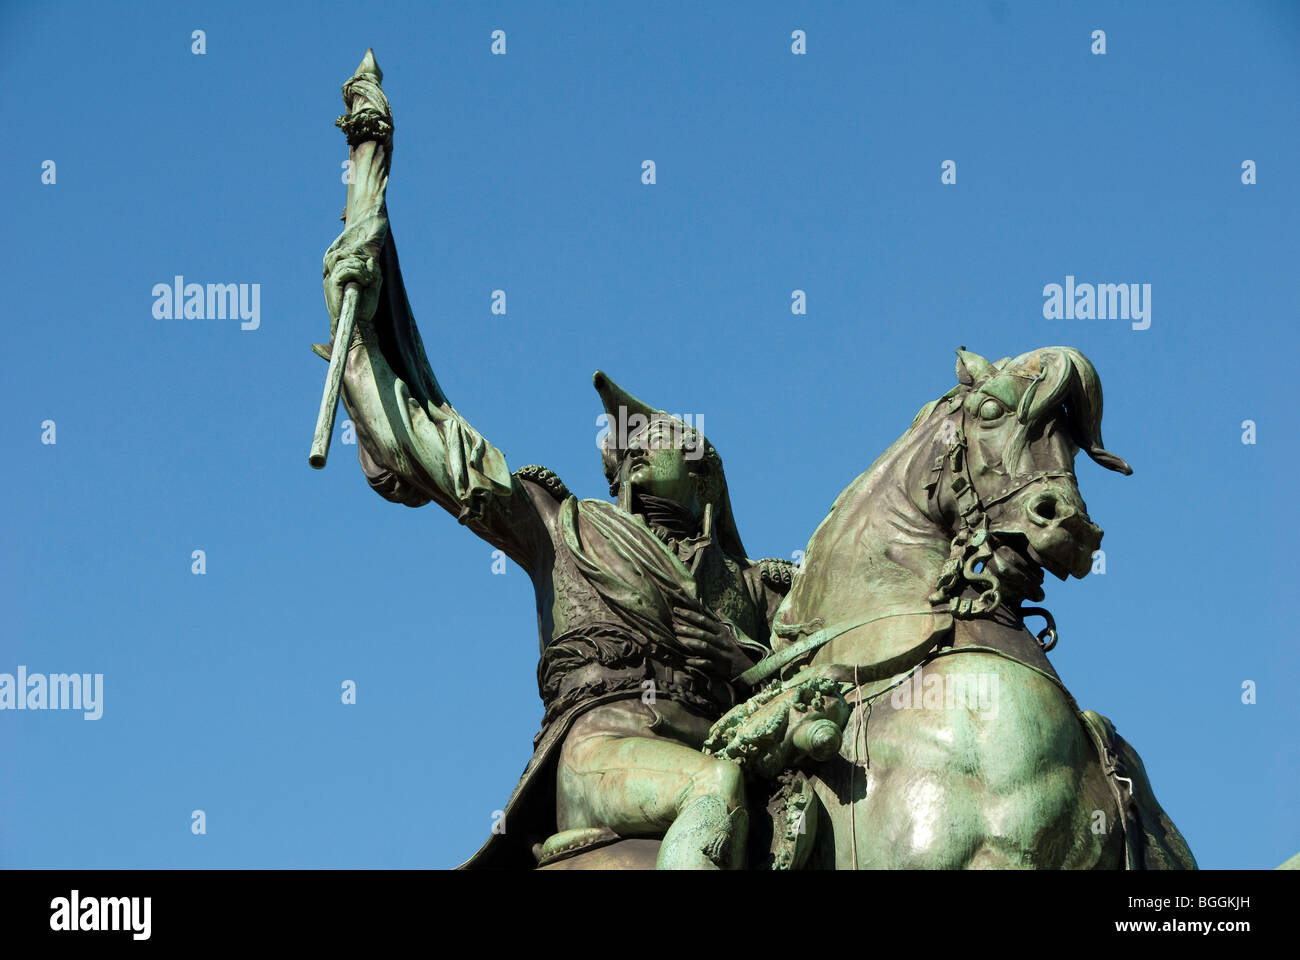 Statue of General Manuel Belgrano on horse in Plaza de Mayor in Buenos Aires, Argentina - Stock Image